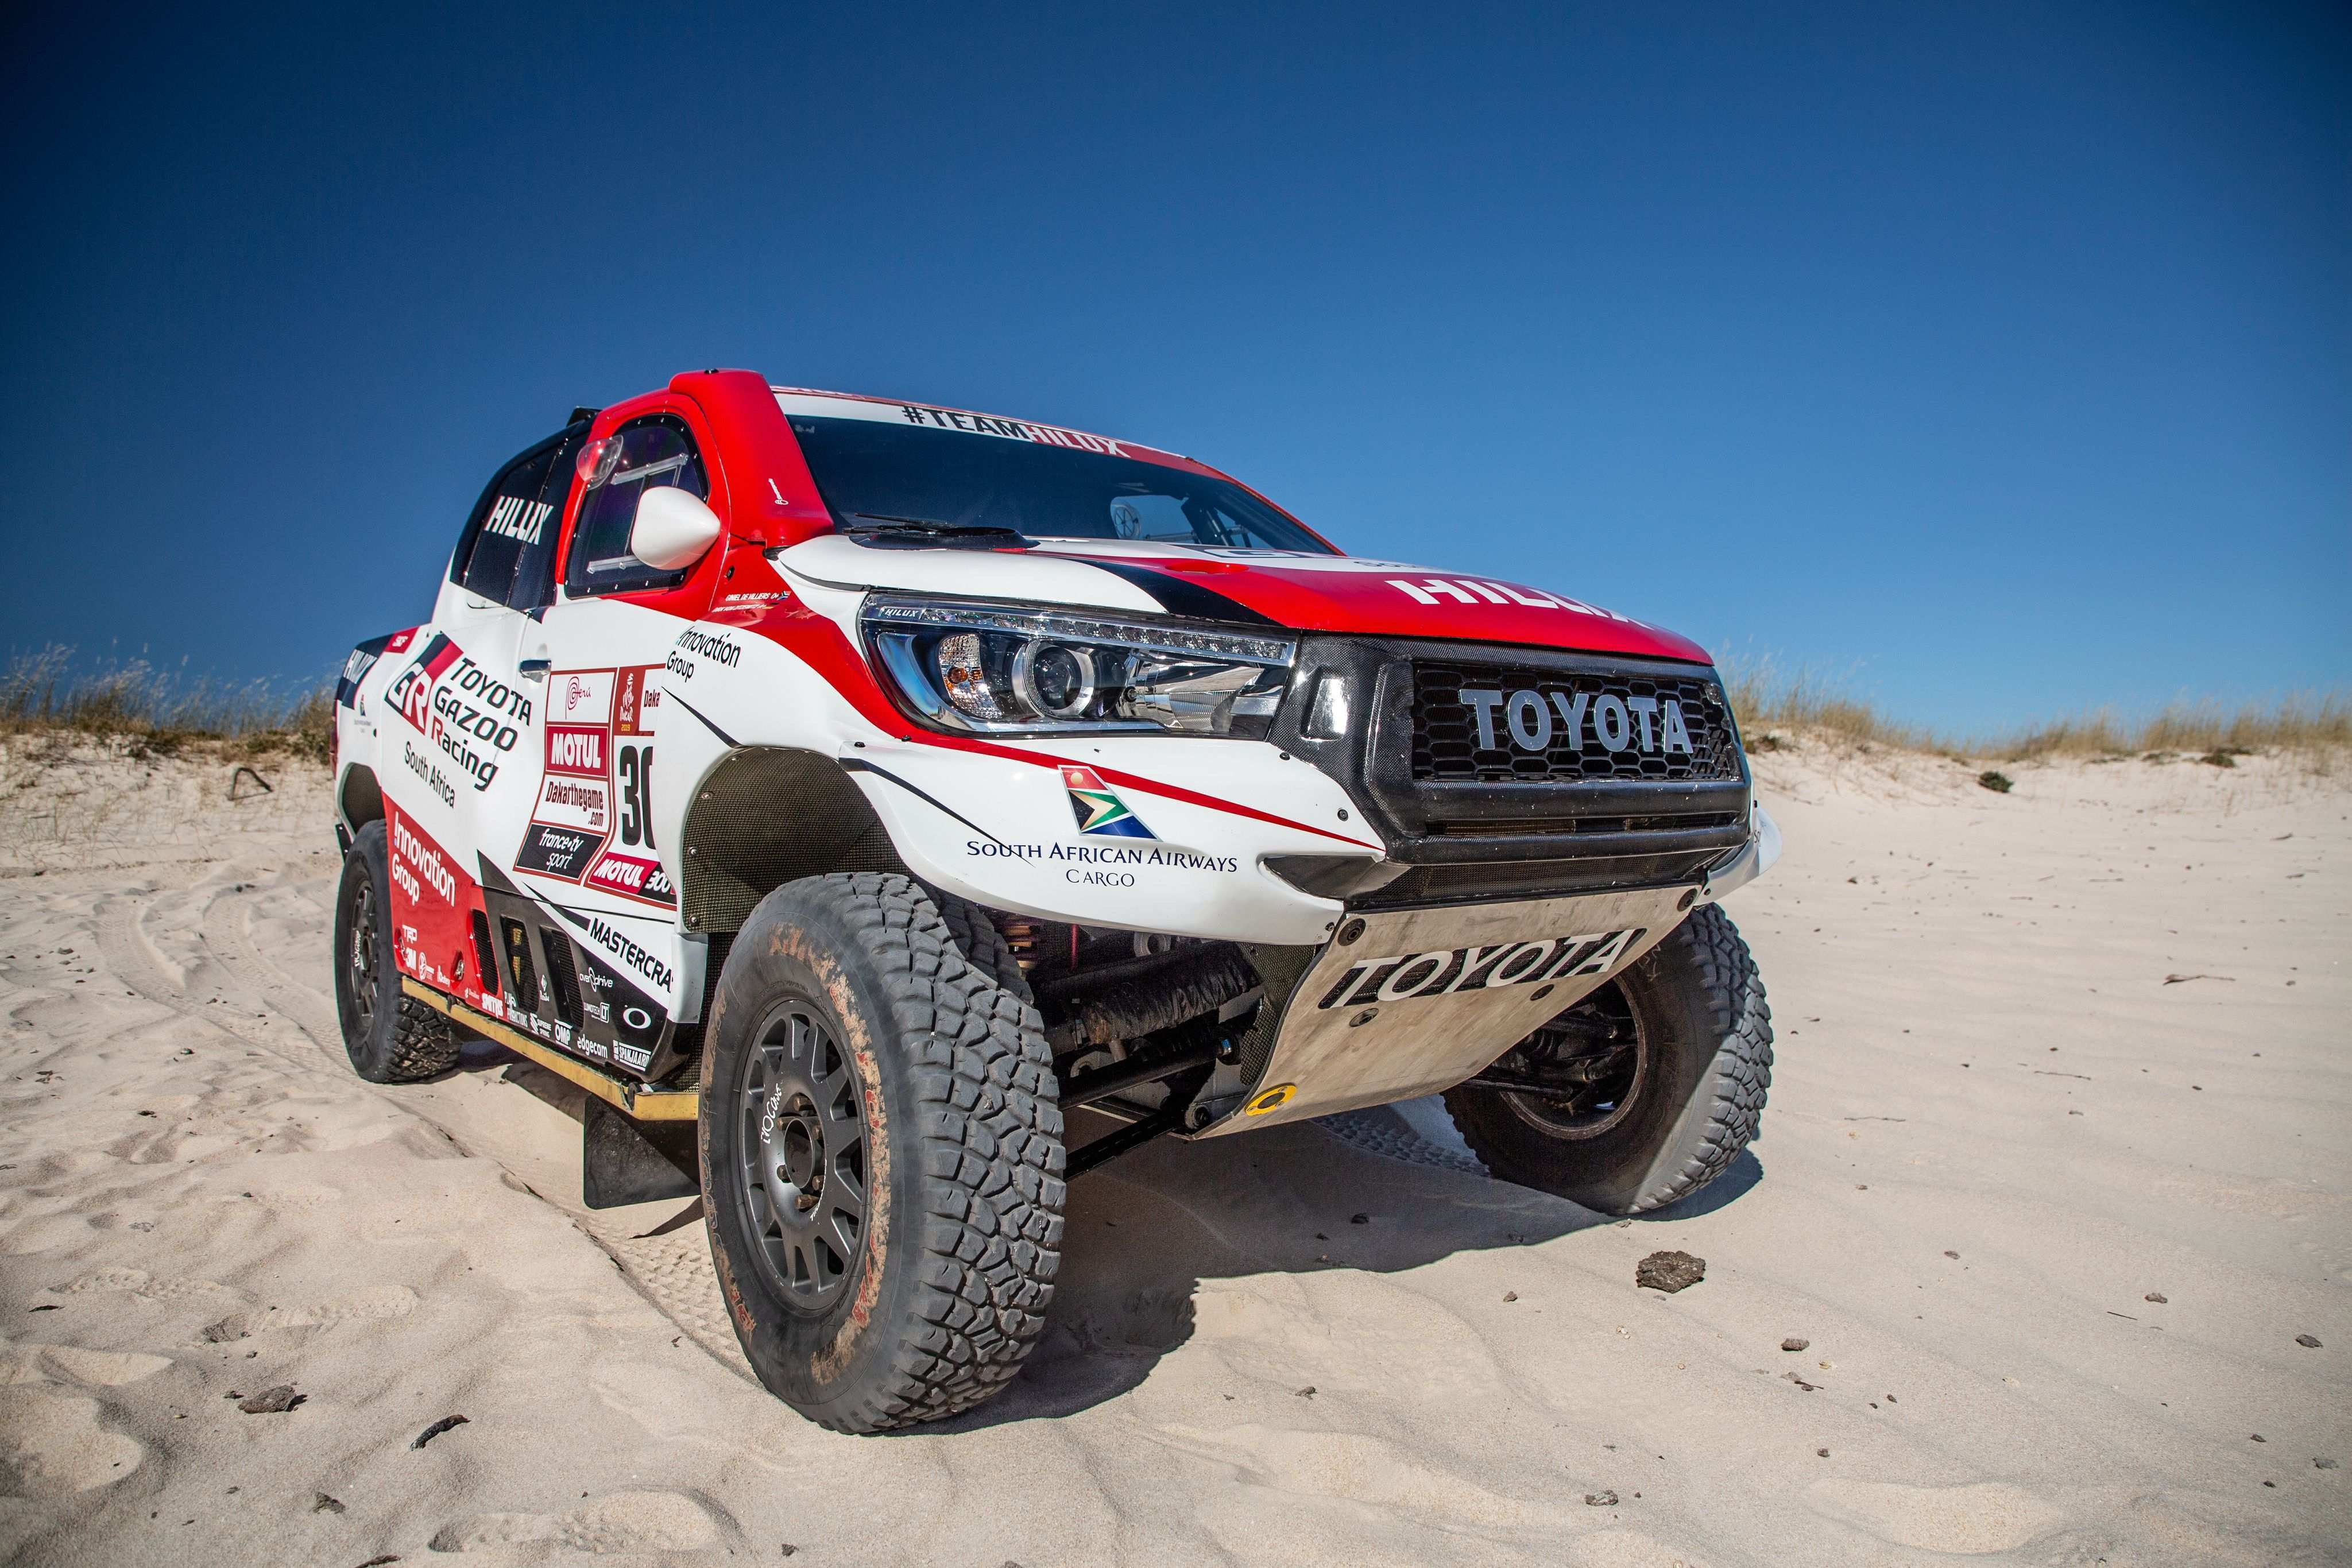 86 The Best Toyota Off Road Vehicle 2019 Specs And Review Release by Best Toyota Off Road Vehicle 2019 Specs And Review